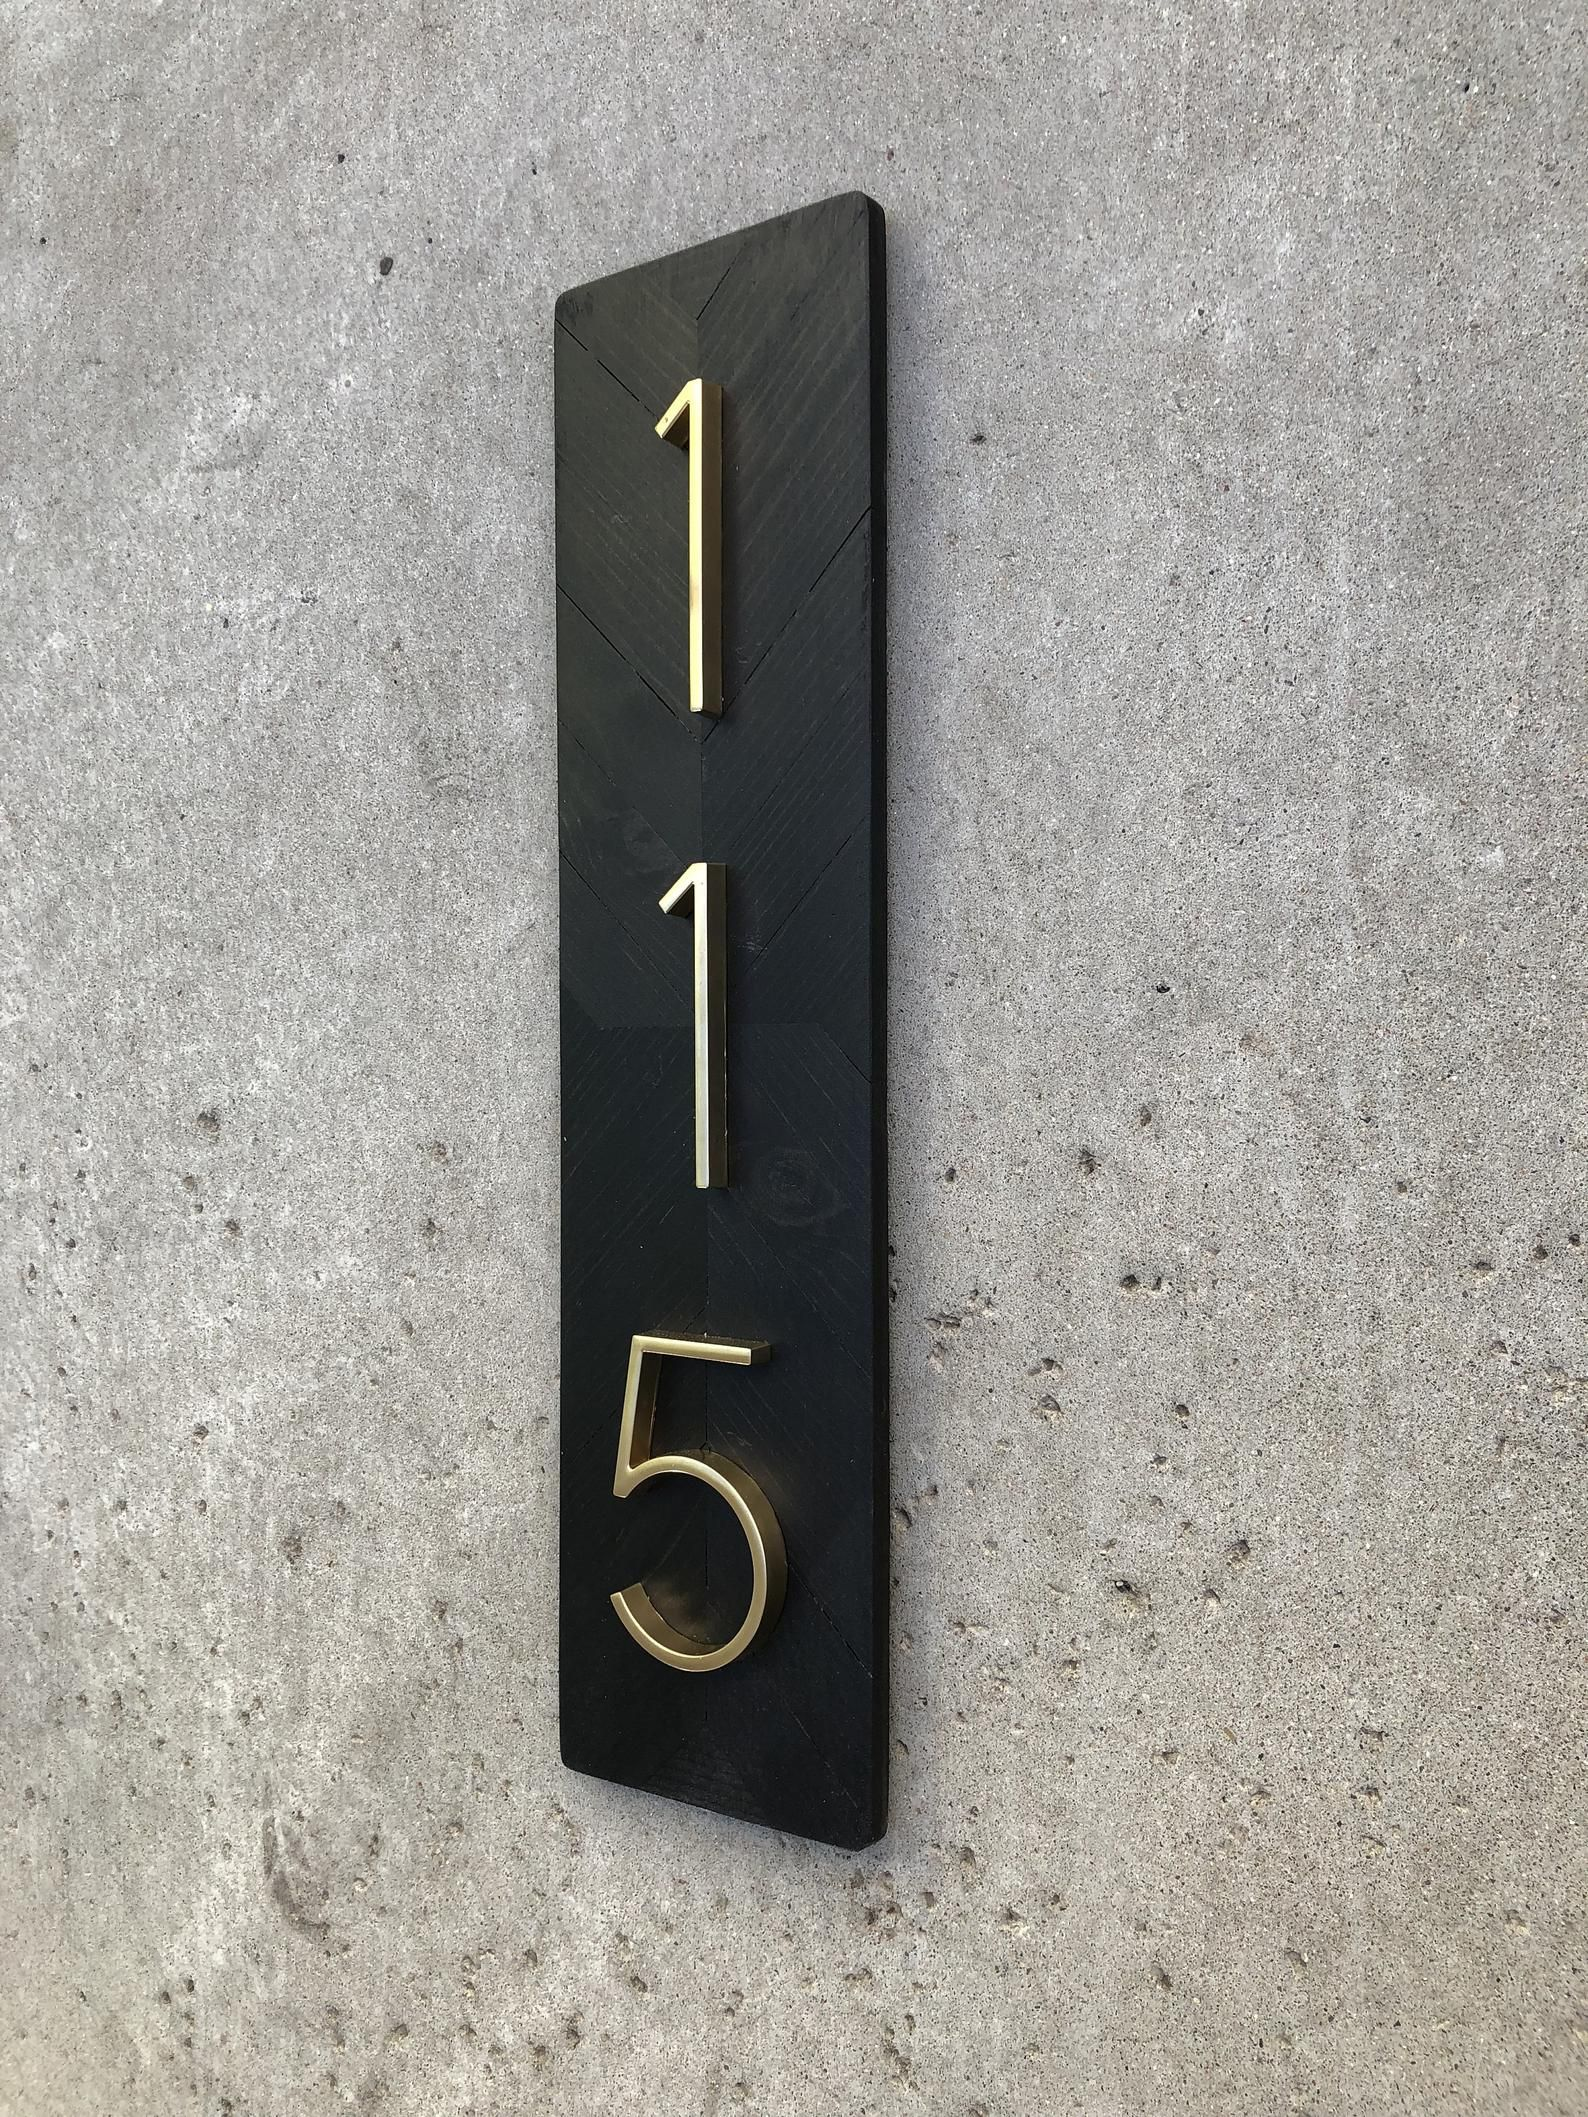 cc5f5cd967335 Address Plaque Vertical, Vertical House Numbers, Modern House ...